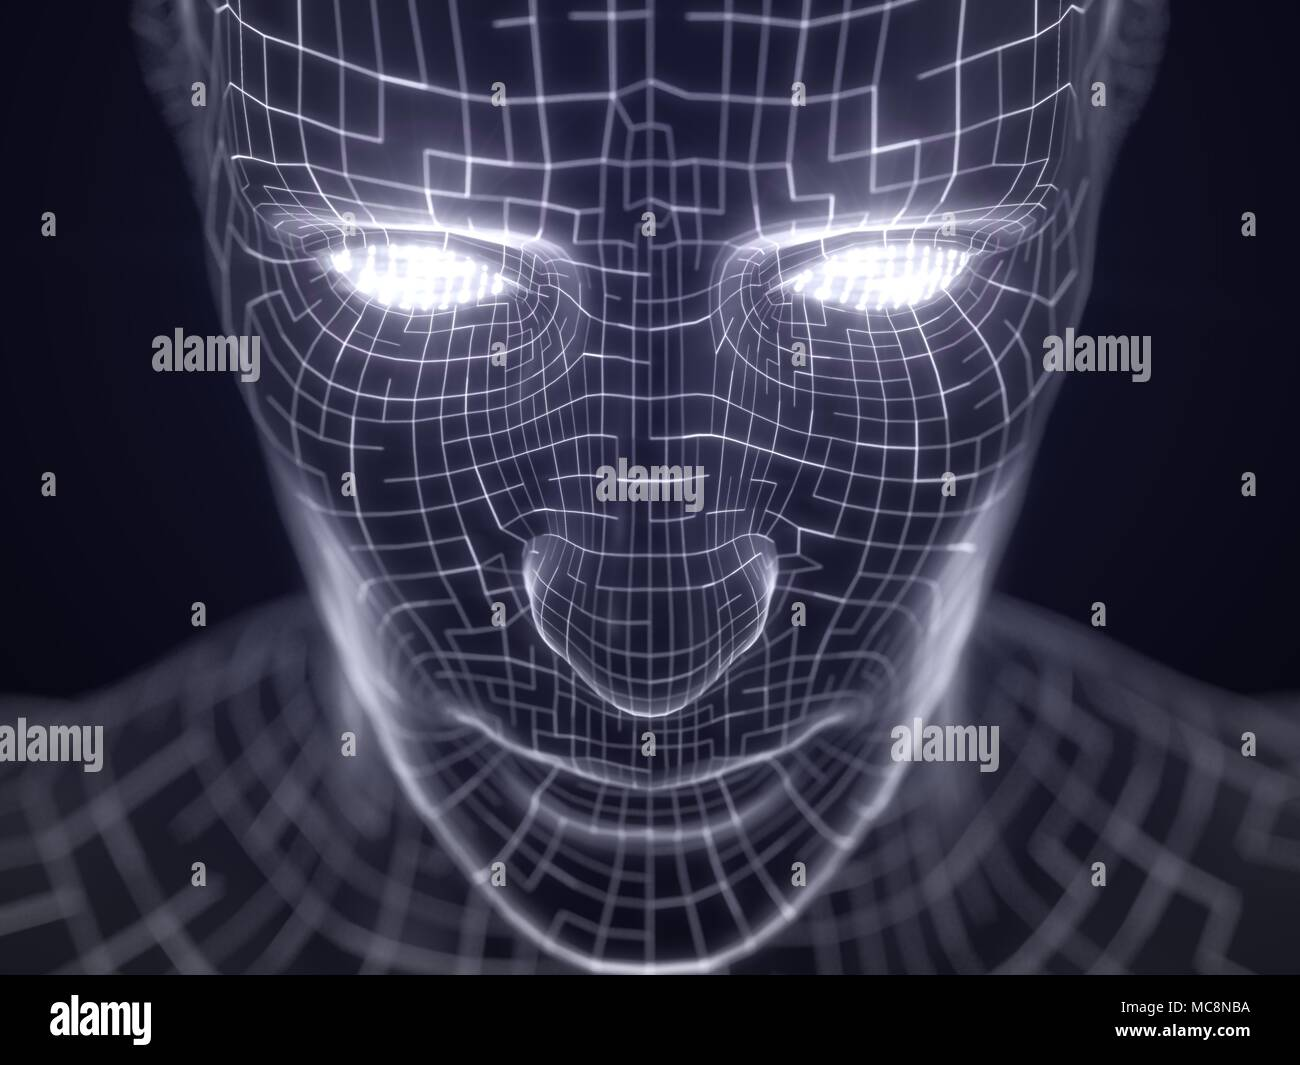 artificial intelligence concept with virtual human avatar. 3d illustration. suitable for technology, artificial intelligence, data mining,deep learnin - Stock Image